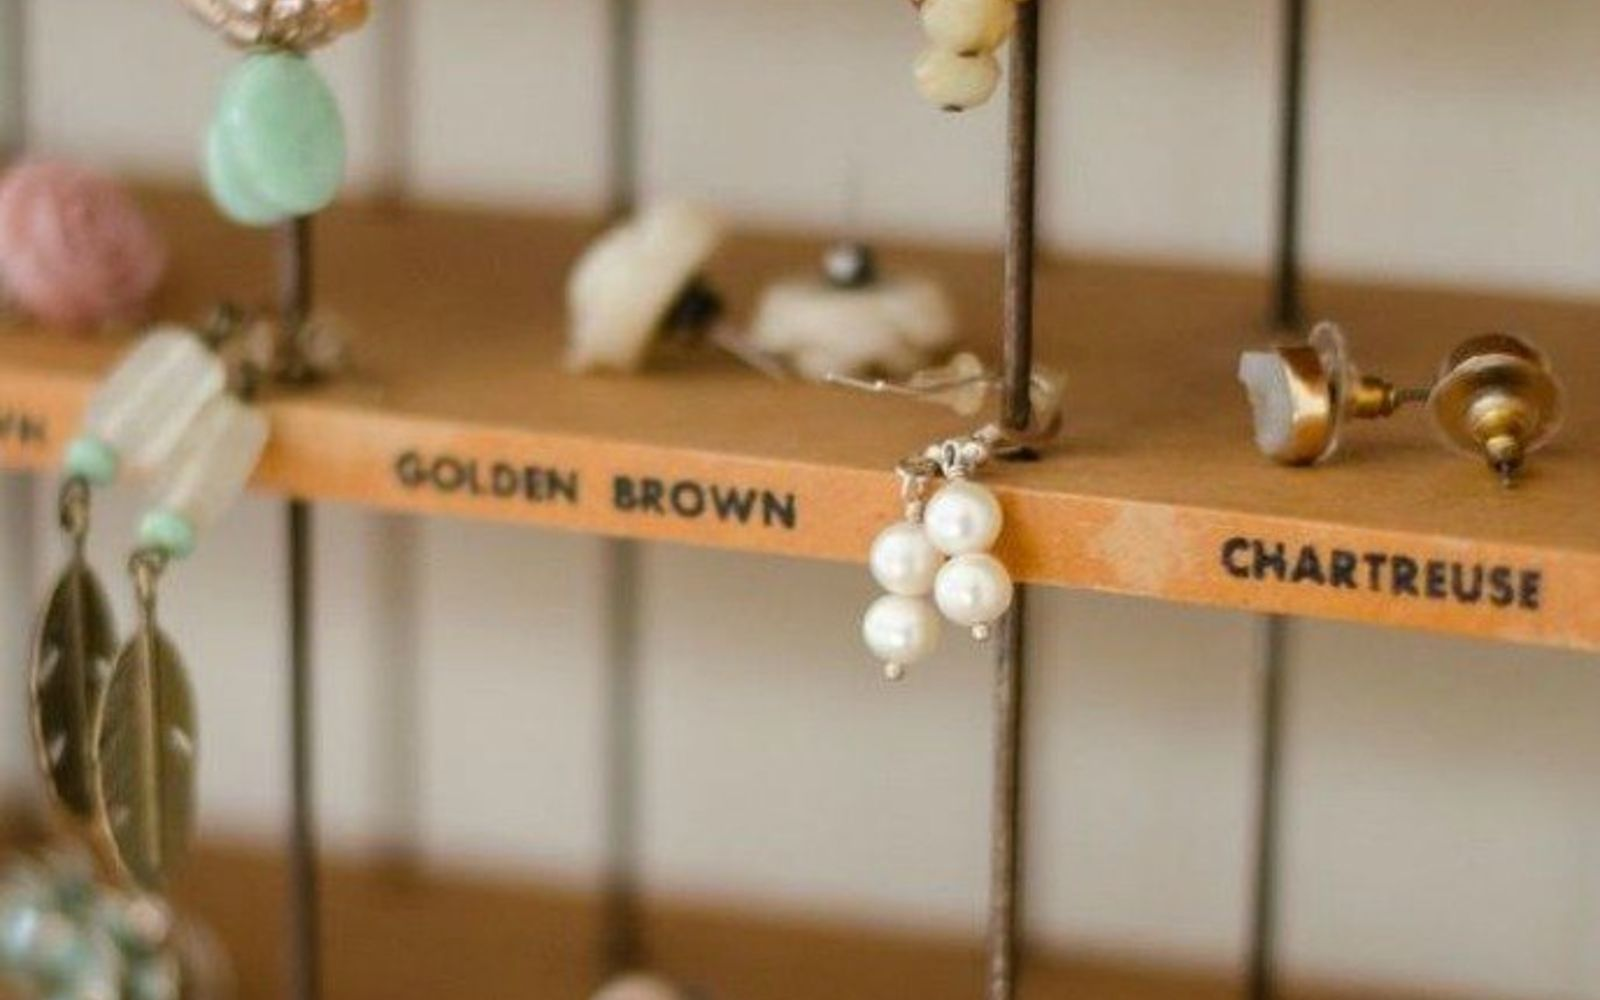 s 21 jewelry organizing ideas that are better than a jewelry box, organizing, This old dye rack that displays everything